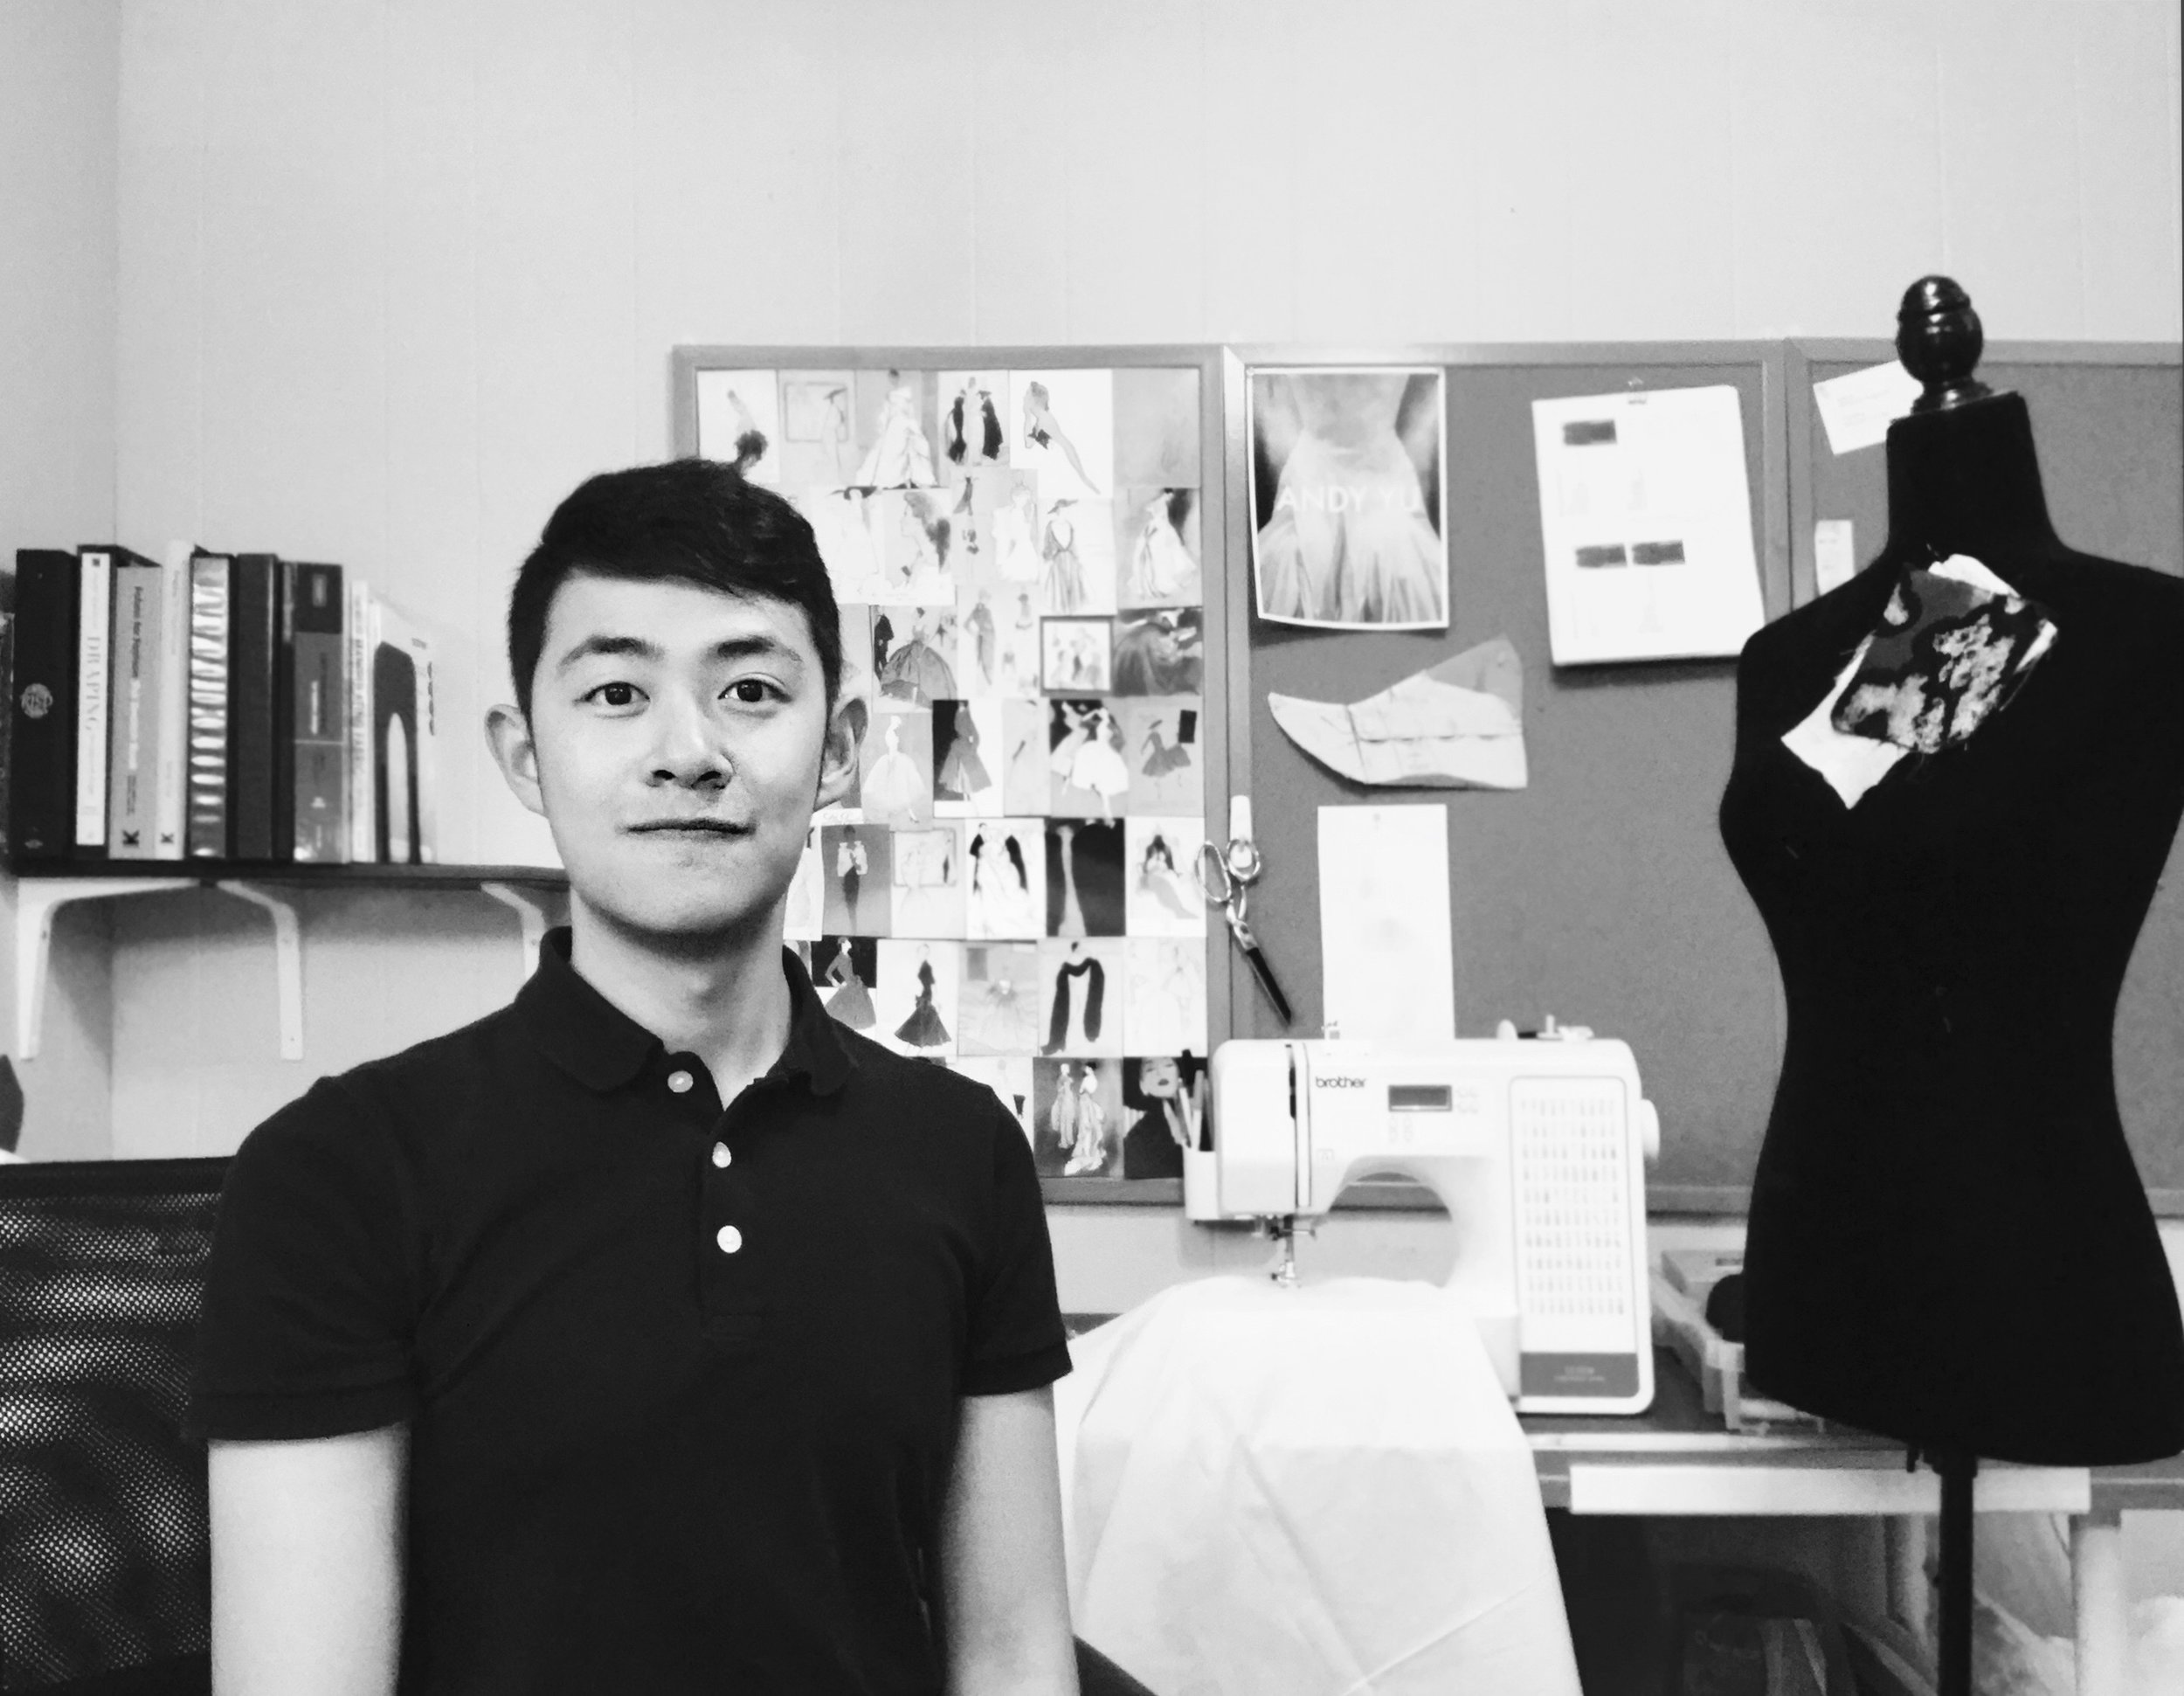 "ANDY Yu Tao An - EDUCATIONRhode Island School of Design (RISD), Providence RI, 2019Bachelor of Fine Art Honor student: Industrial Design Major, Apparel concentration RISD European Honors Program: Semester in RomeRECOGNITIONArchitectural Digest India, June 29, 2019. Talawadekar, Vaishnavi. ""These ingenious home products are rewriting the rulebook for the handicapped"".MUSE Design Award Fashion Design Rose Gold Winner 2019AMP, December 7, 2018. Clothier, Mari. ""Changes to product design due to aging of baby boomers"". Taiwan International Student Design Competition Finalist 2018ETFashion Global Design Award Finalist Haute Couture Design 2018James Dyson Award US National Winner 2017PROFESSIONAL EXPERIENCECurators' AssistantRISD Museum: Costume and Textiles Department, Providence RI, 2018 - PresentAssisting with collections care, exhibitions preparation, and conservation of costume and textiles. Specifically with documentation, preparation, conservation, organization.Gallery InstallerRISD European Honors Program, Rome ITL, 2018 Assisting with planning, installation and organizing events.Branding and Merchandise InternWaterFire Providence, Providence RI, 2017Branding and merchandise management, product and package design for art organization events.Design and Production InternHeadmaster, Providence RI, 2017Design graphic layout, branding and print issue, web content and publication.STUDIO EXPERIENCEApparel Design, RISD Apparel Design, 2017- 2019Manufacture drawings and design with photoshop and illustration rendering. Pattern design with draping, fitting, tailoring, handwork.Textile Design, RISD Apparel Design, 2018- 2019 Embroidery, beading, quilting, dye and fabric manipulation. Pattern design with draping, fitting, tailoring, handwork.Ability Cup, RISD Design Principle, 2017Product design with model base on research, 3D print prototype and digital rendering. 2017 James Dyson Award US National Winning ProjectSKILLSDesignIndustrial sewing, Pattern Design, Textile Design, Hand sewing, Leatherwork, Embroidery, Digital Embroidery, Tailoring, Fashion Illustration, Prototyping, Woodwork, Metalwork, Product DesignDigitalAdvance Adobe Photoshop, Illustrator, Indesign; Advance CAD, Rhino, Solidworks Final Cut Pro, Photography, Laser cutter, After Effect, 3D printer, Microsoft OfficeProfessionalLeadership, Management, Communication, Problem-solving, Time management, CollaborationLanguageChinese, English, Beginner Italian, Beginner French"